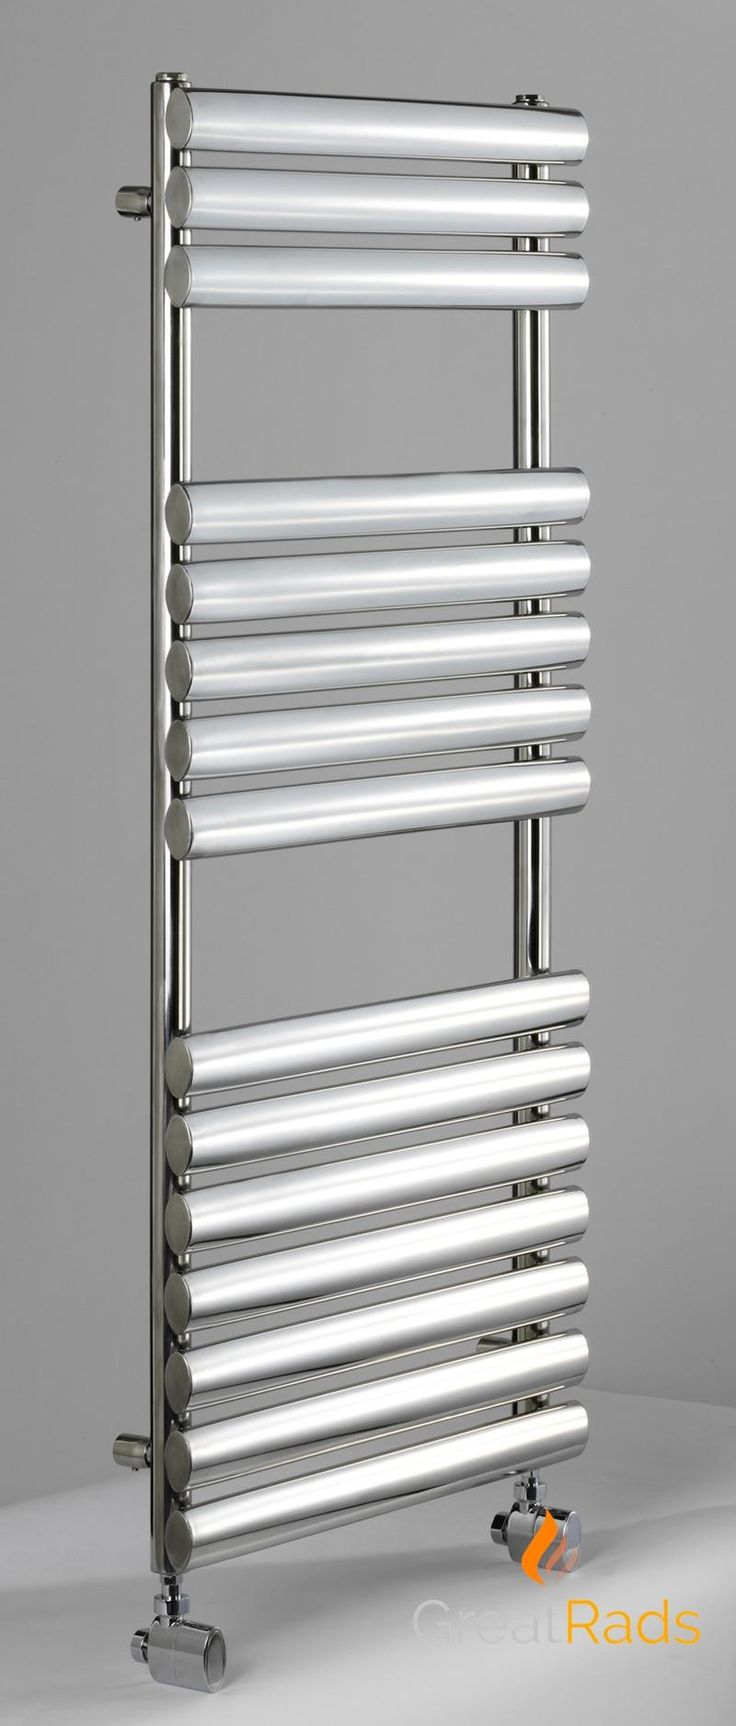 The DQ Cove STR Towel Radiator has a very stylish design. A really versatile towel radiator in a high quality stainless steel. Free UK Delivery